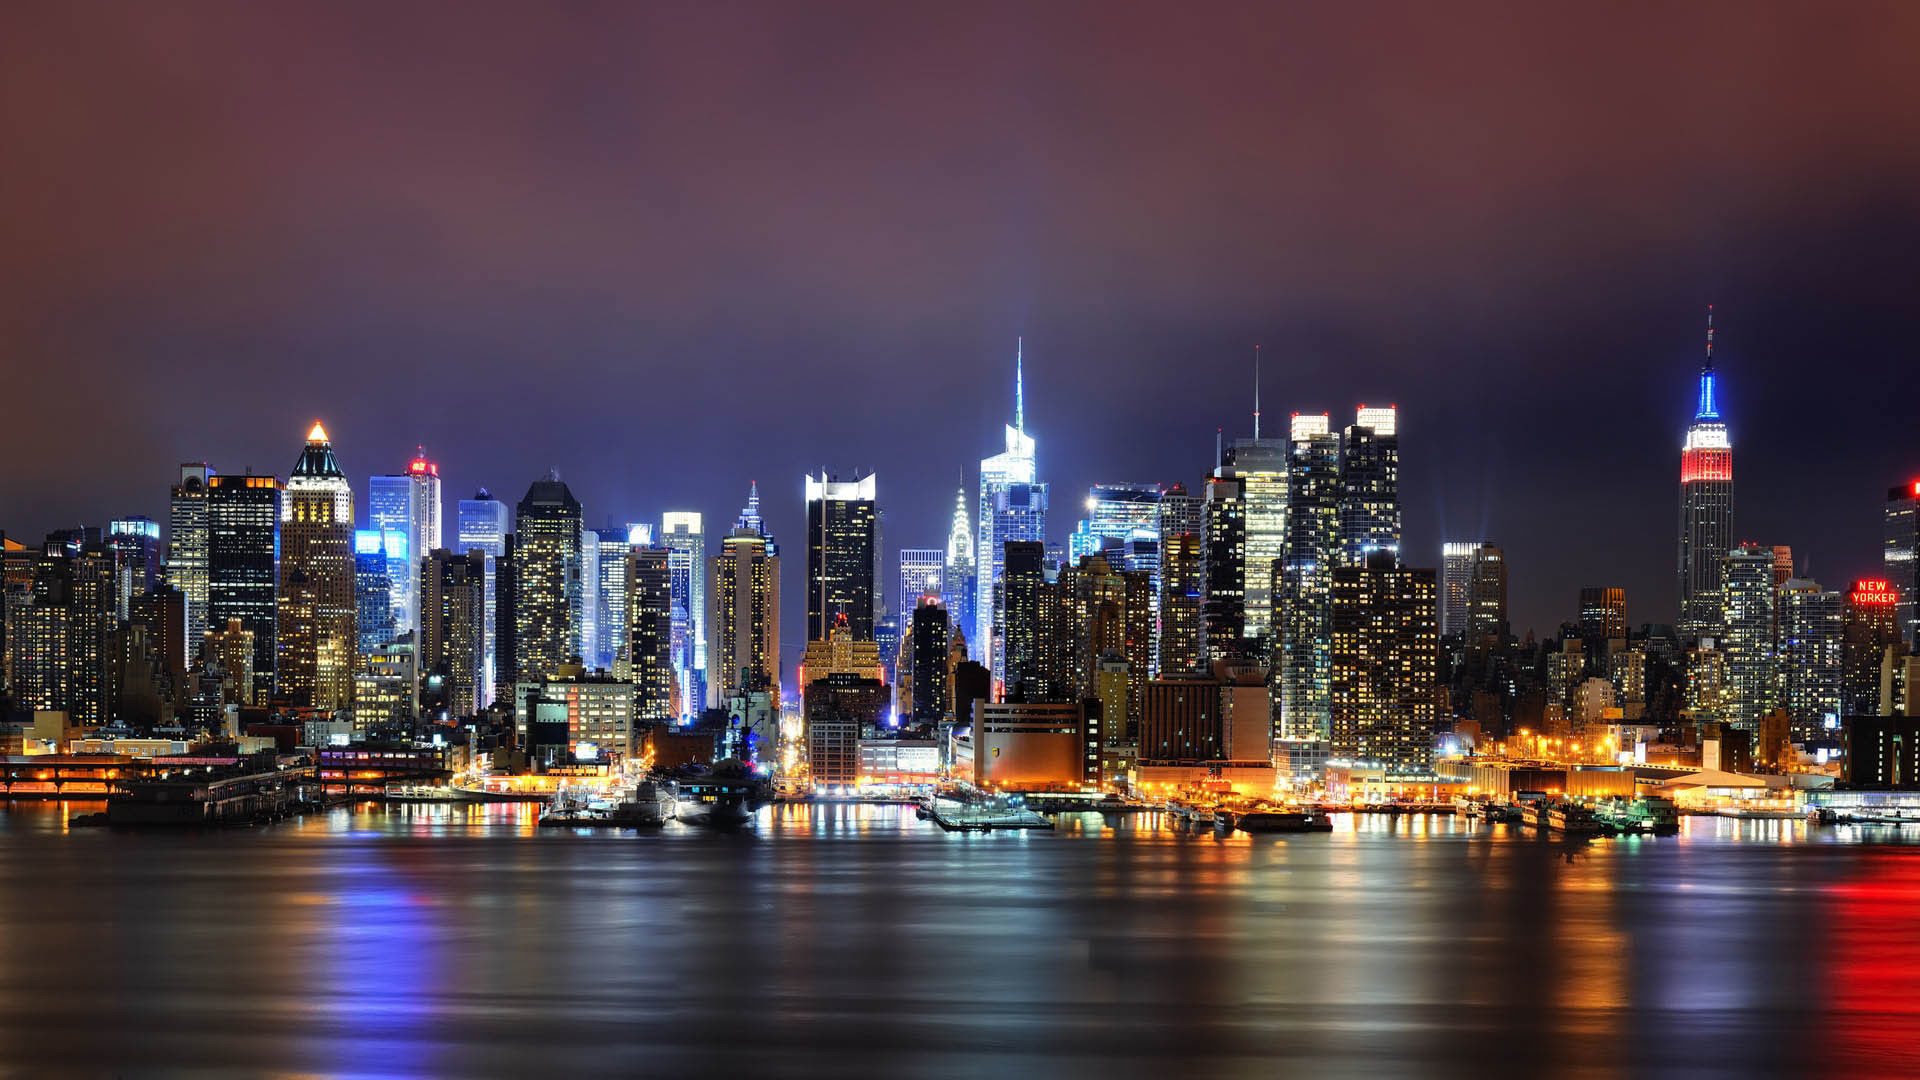 1920x1080 hd pics photos city new york city desktop background wallpaper